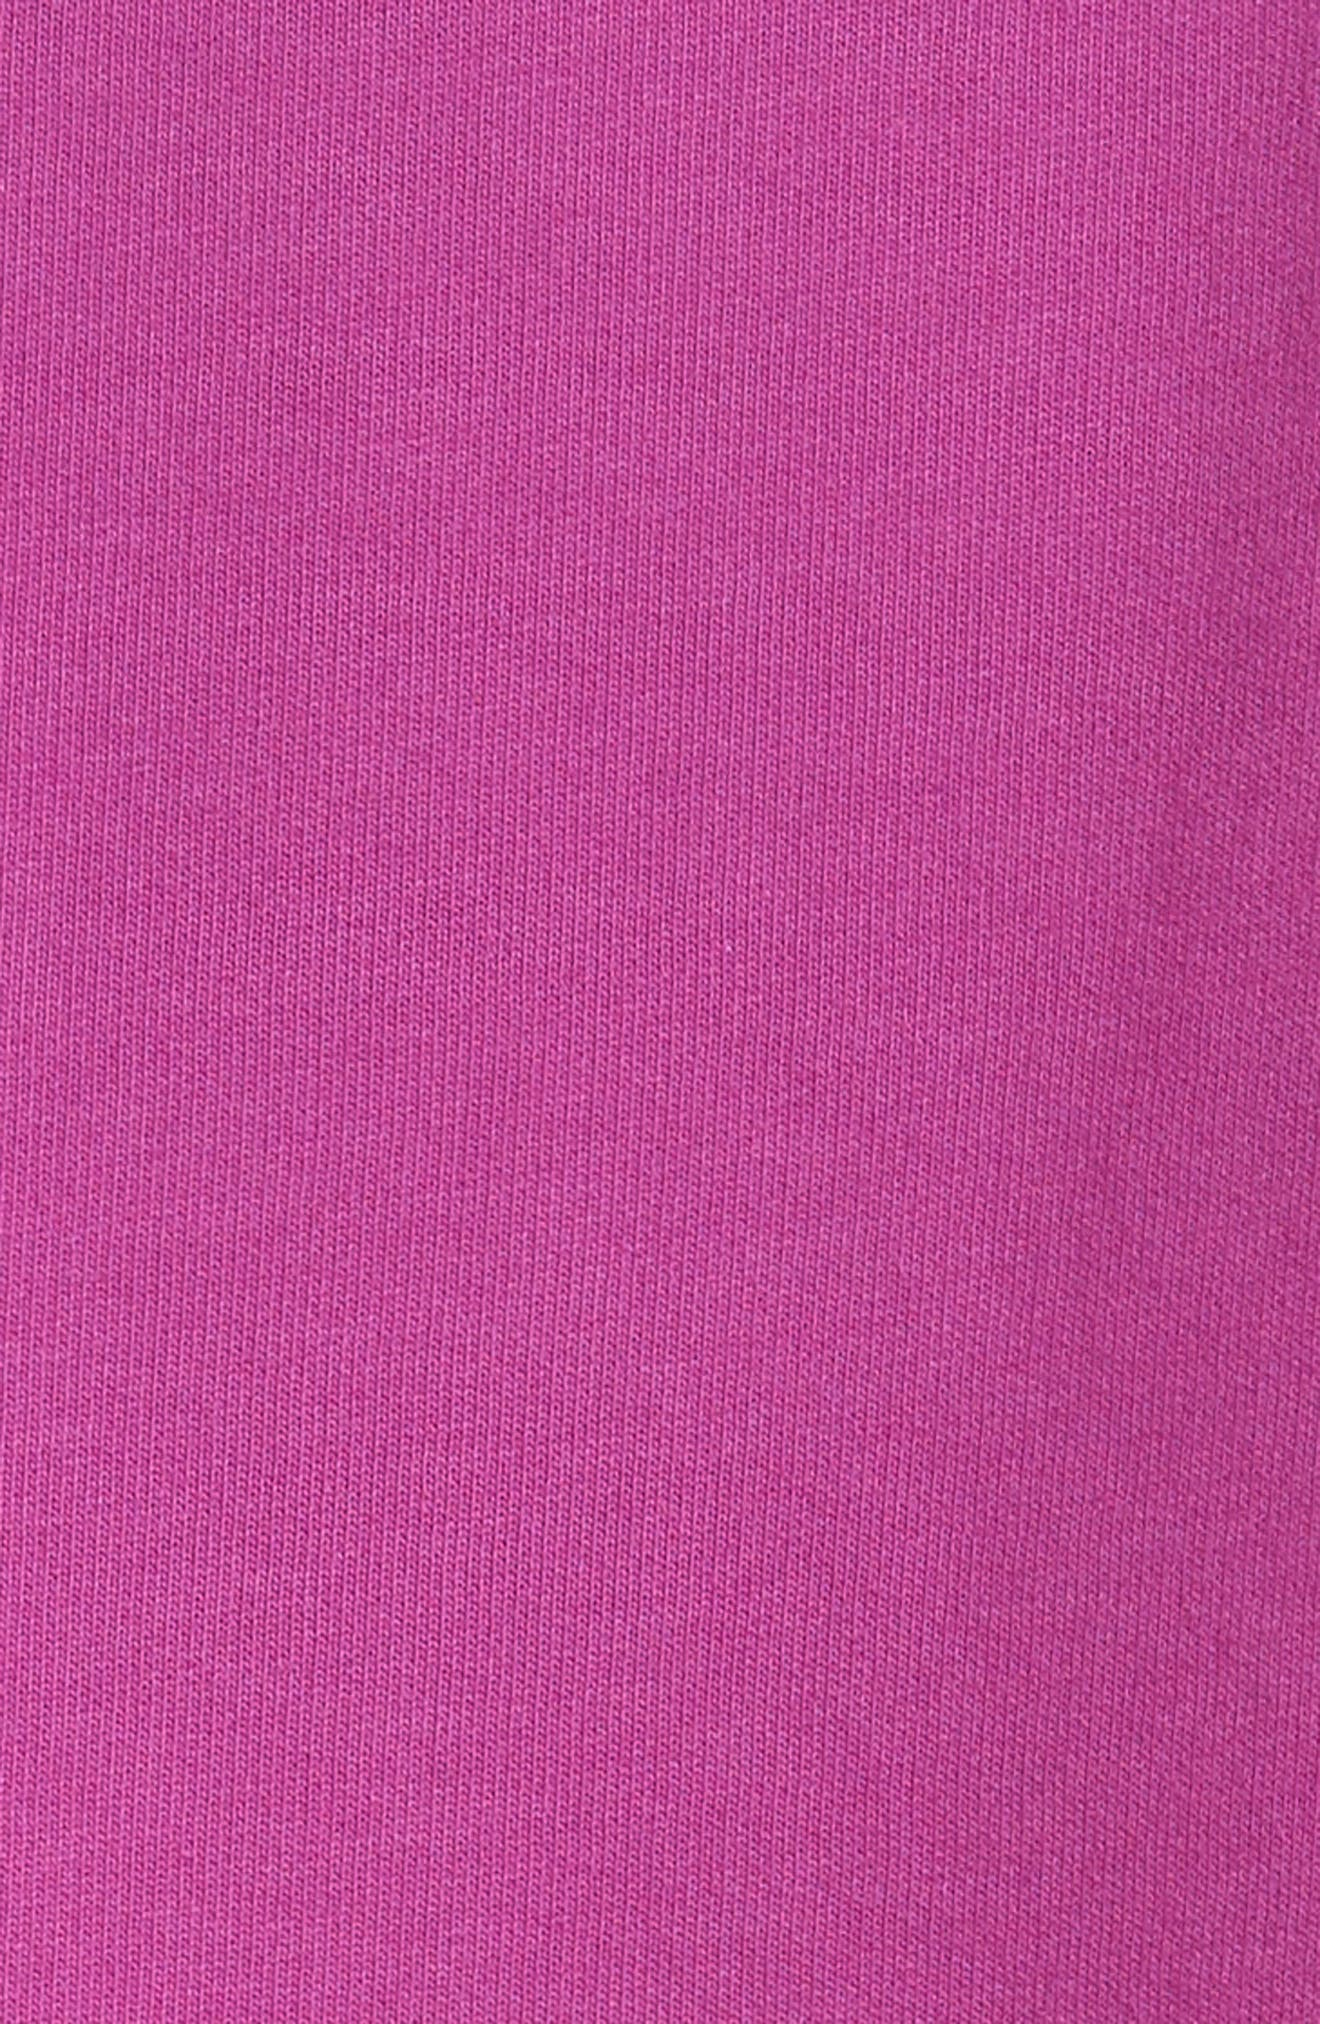 Colorblock Tee,                             Alternate thumbnail 5, color,                             1Red/Violet